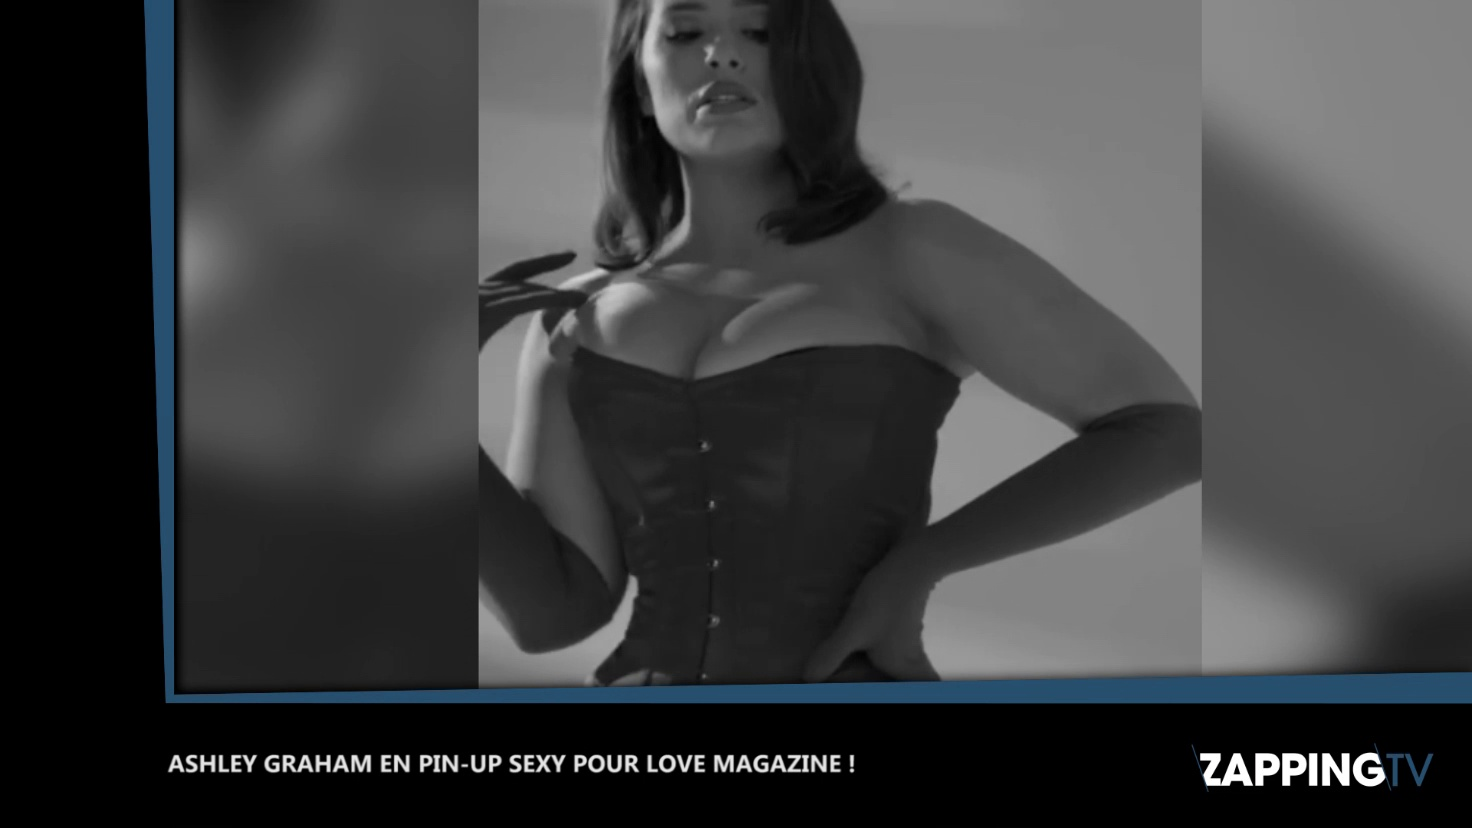 Ashley Graham sexy en pin-up pour Love Magazine. http://bit.ly/2HOChP6